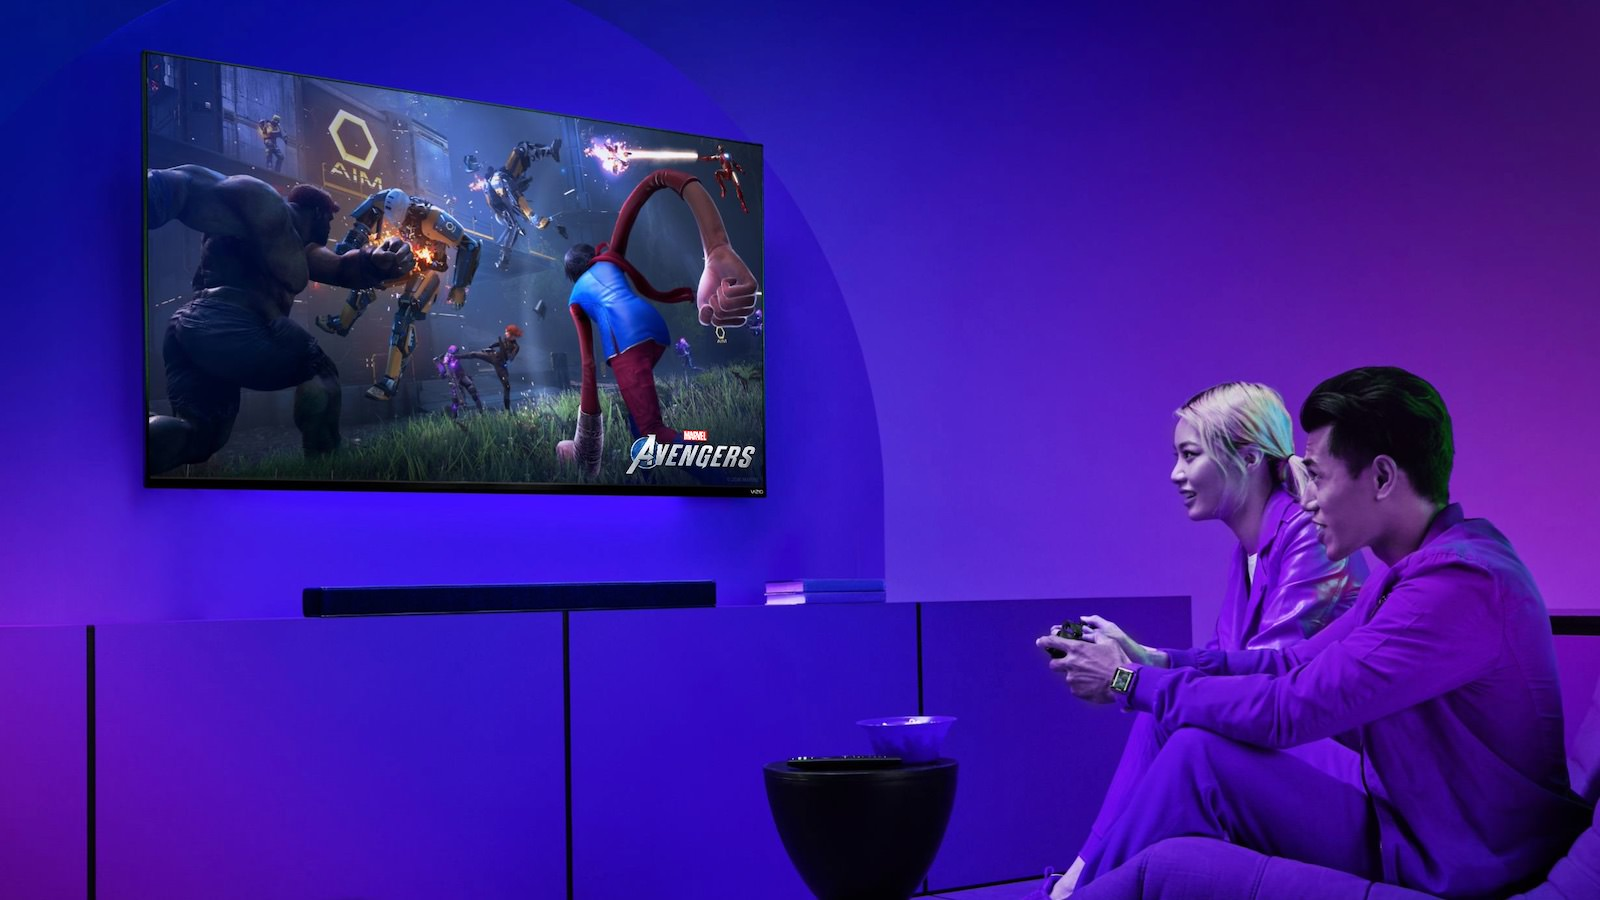 VIZIO Named the Official HDTV and Sound Bar Partner for the All-New Marvel's Avengers Video Game